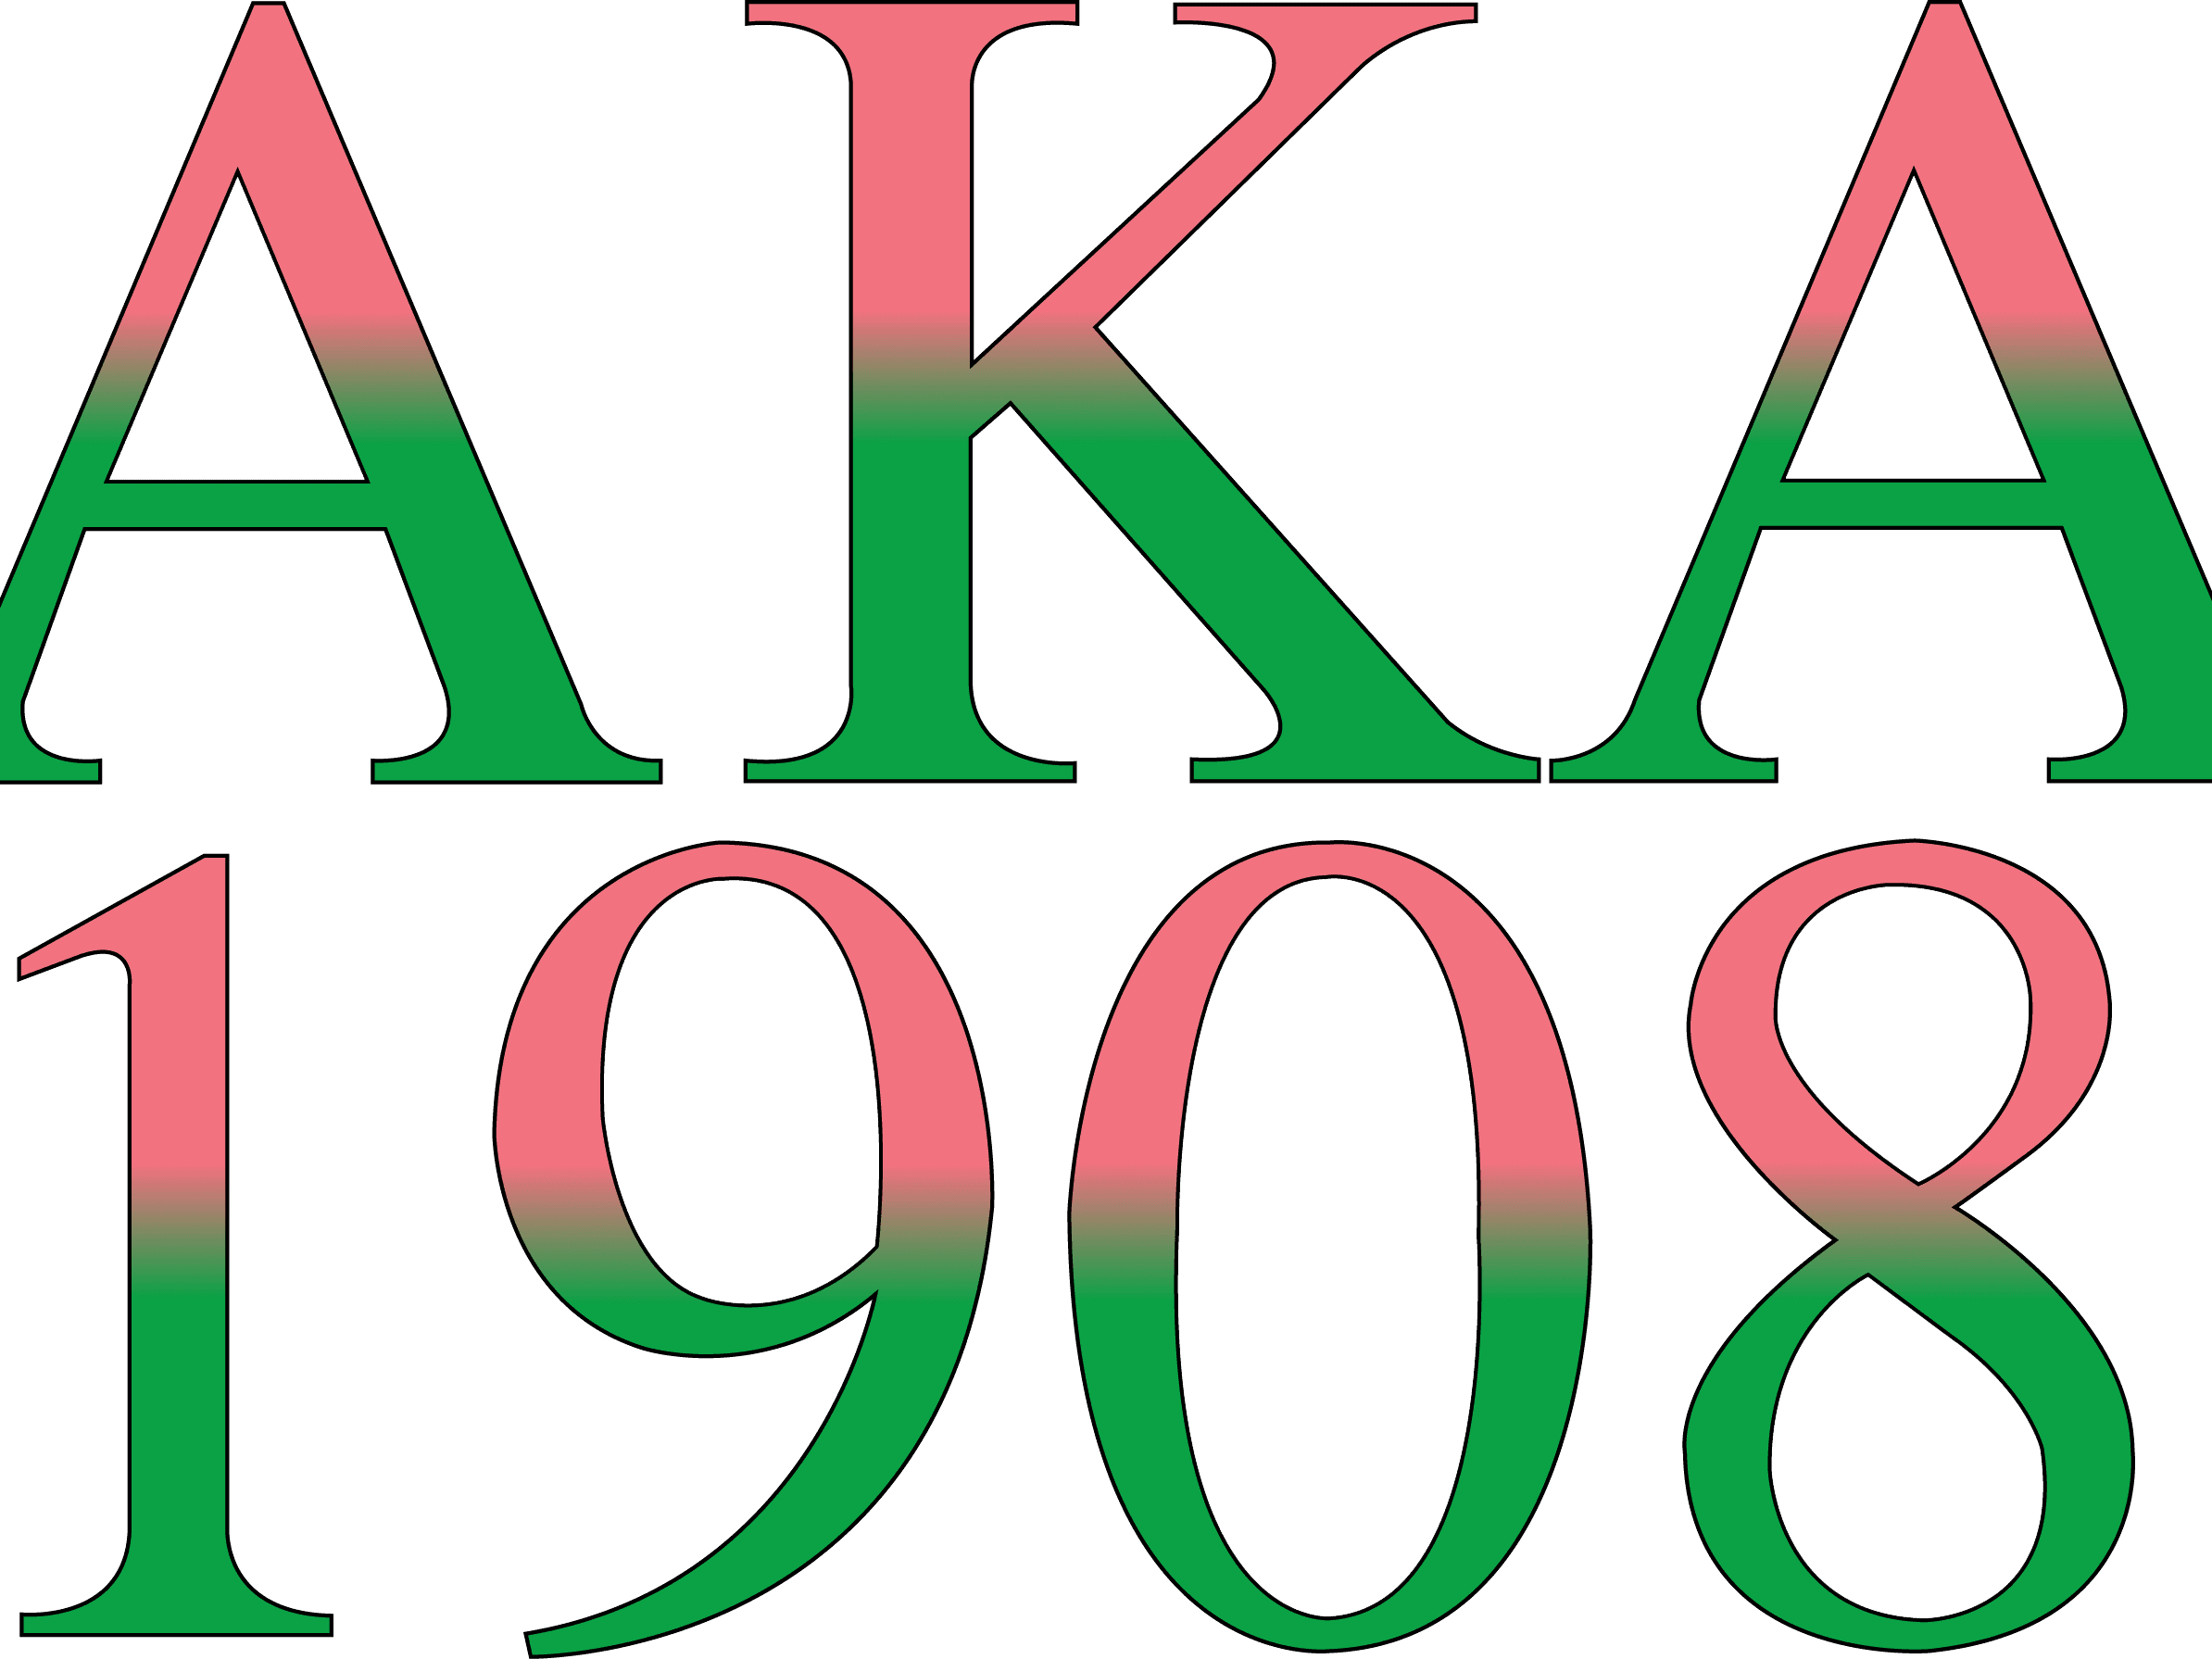 AlphaKappaAlphaSimple_large